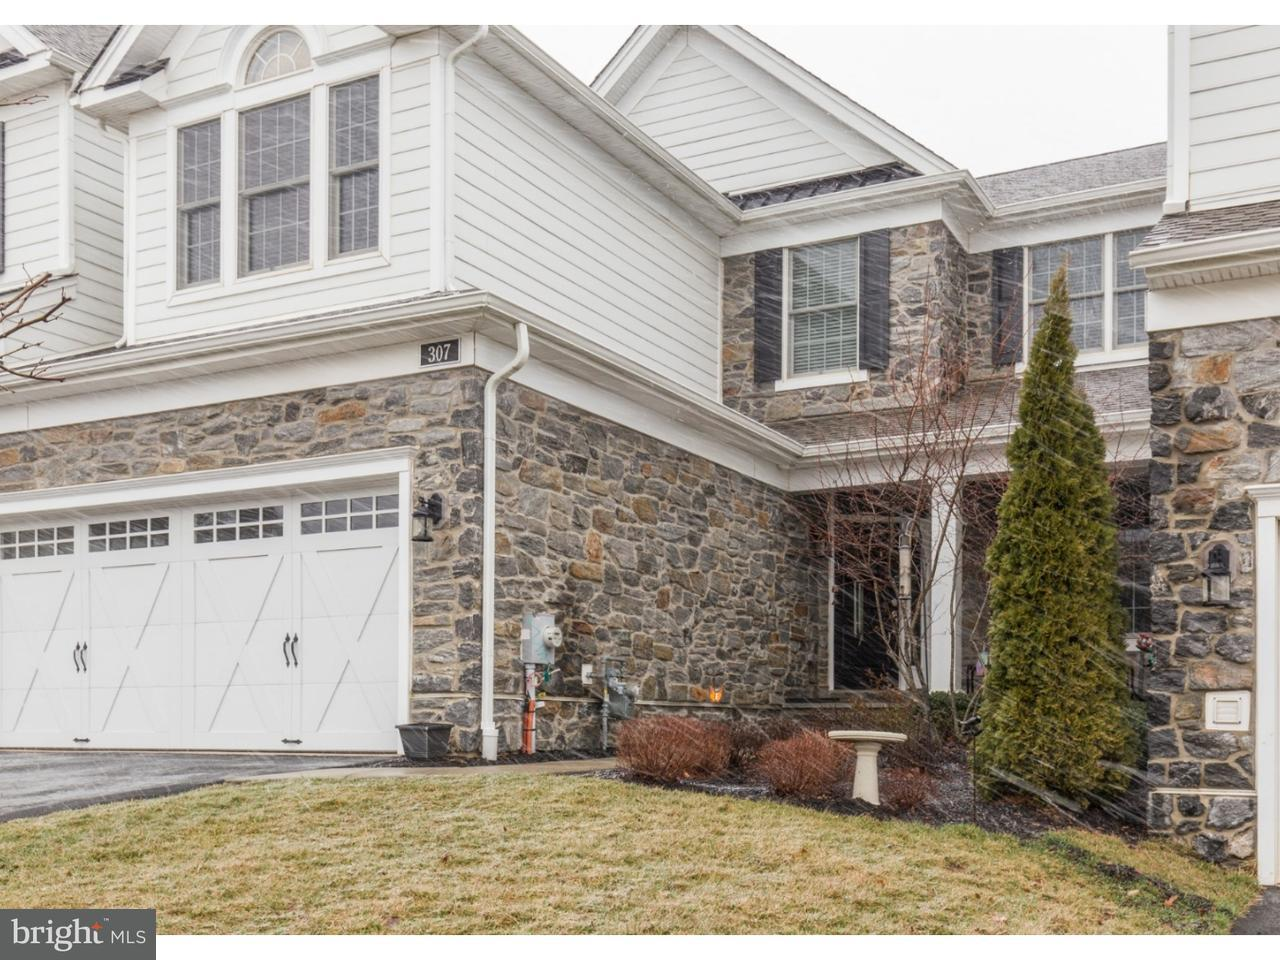 307  Sunny Brook Newtown Square, PA 19073